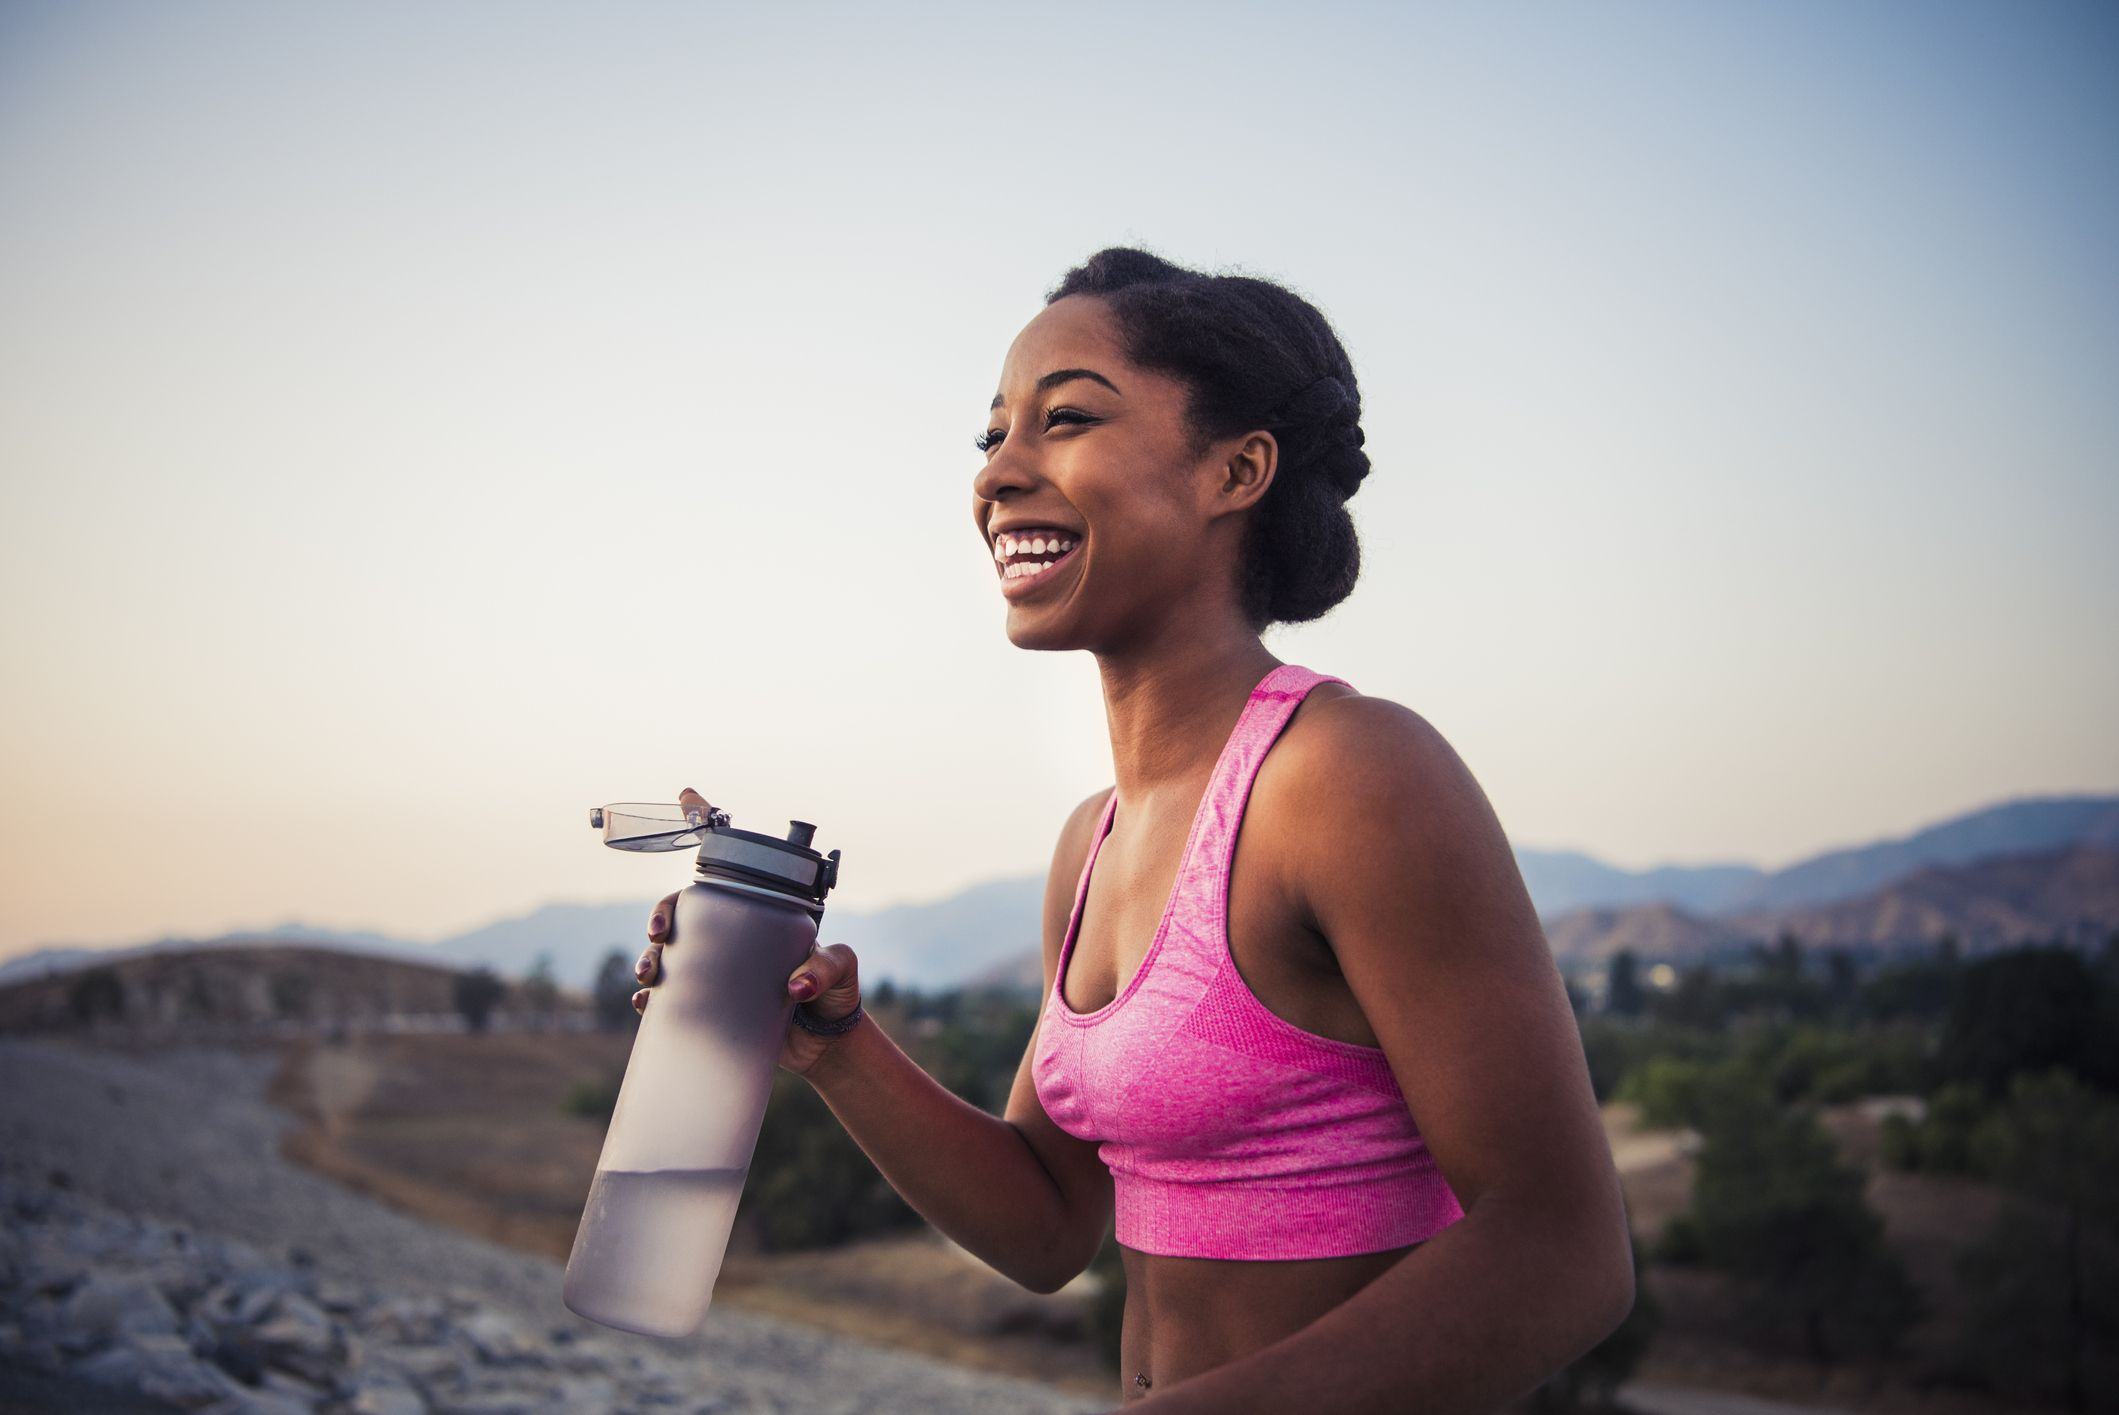 I Asked A Trainer: If I Don't Sweat, Was My Workout Hard Enough?